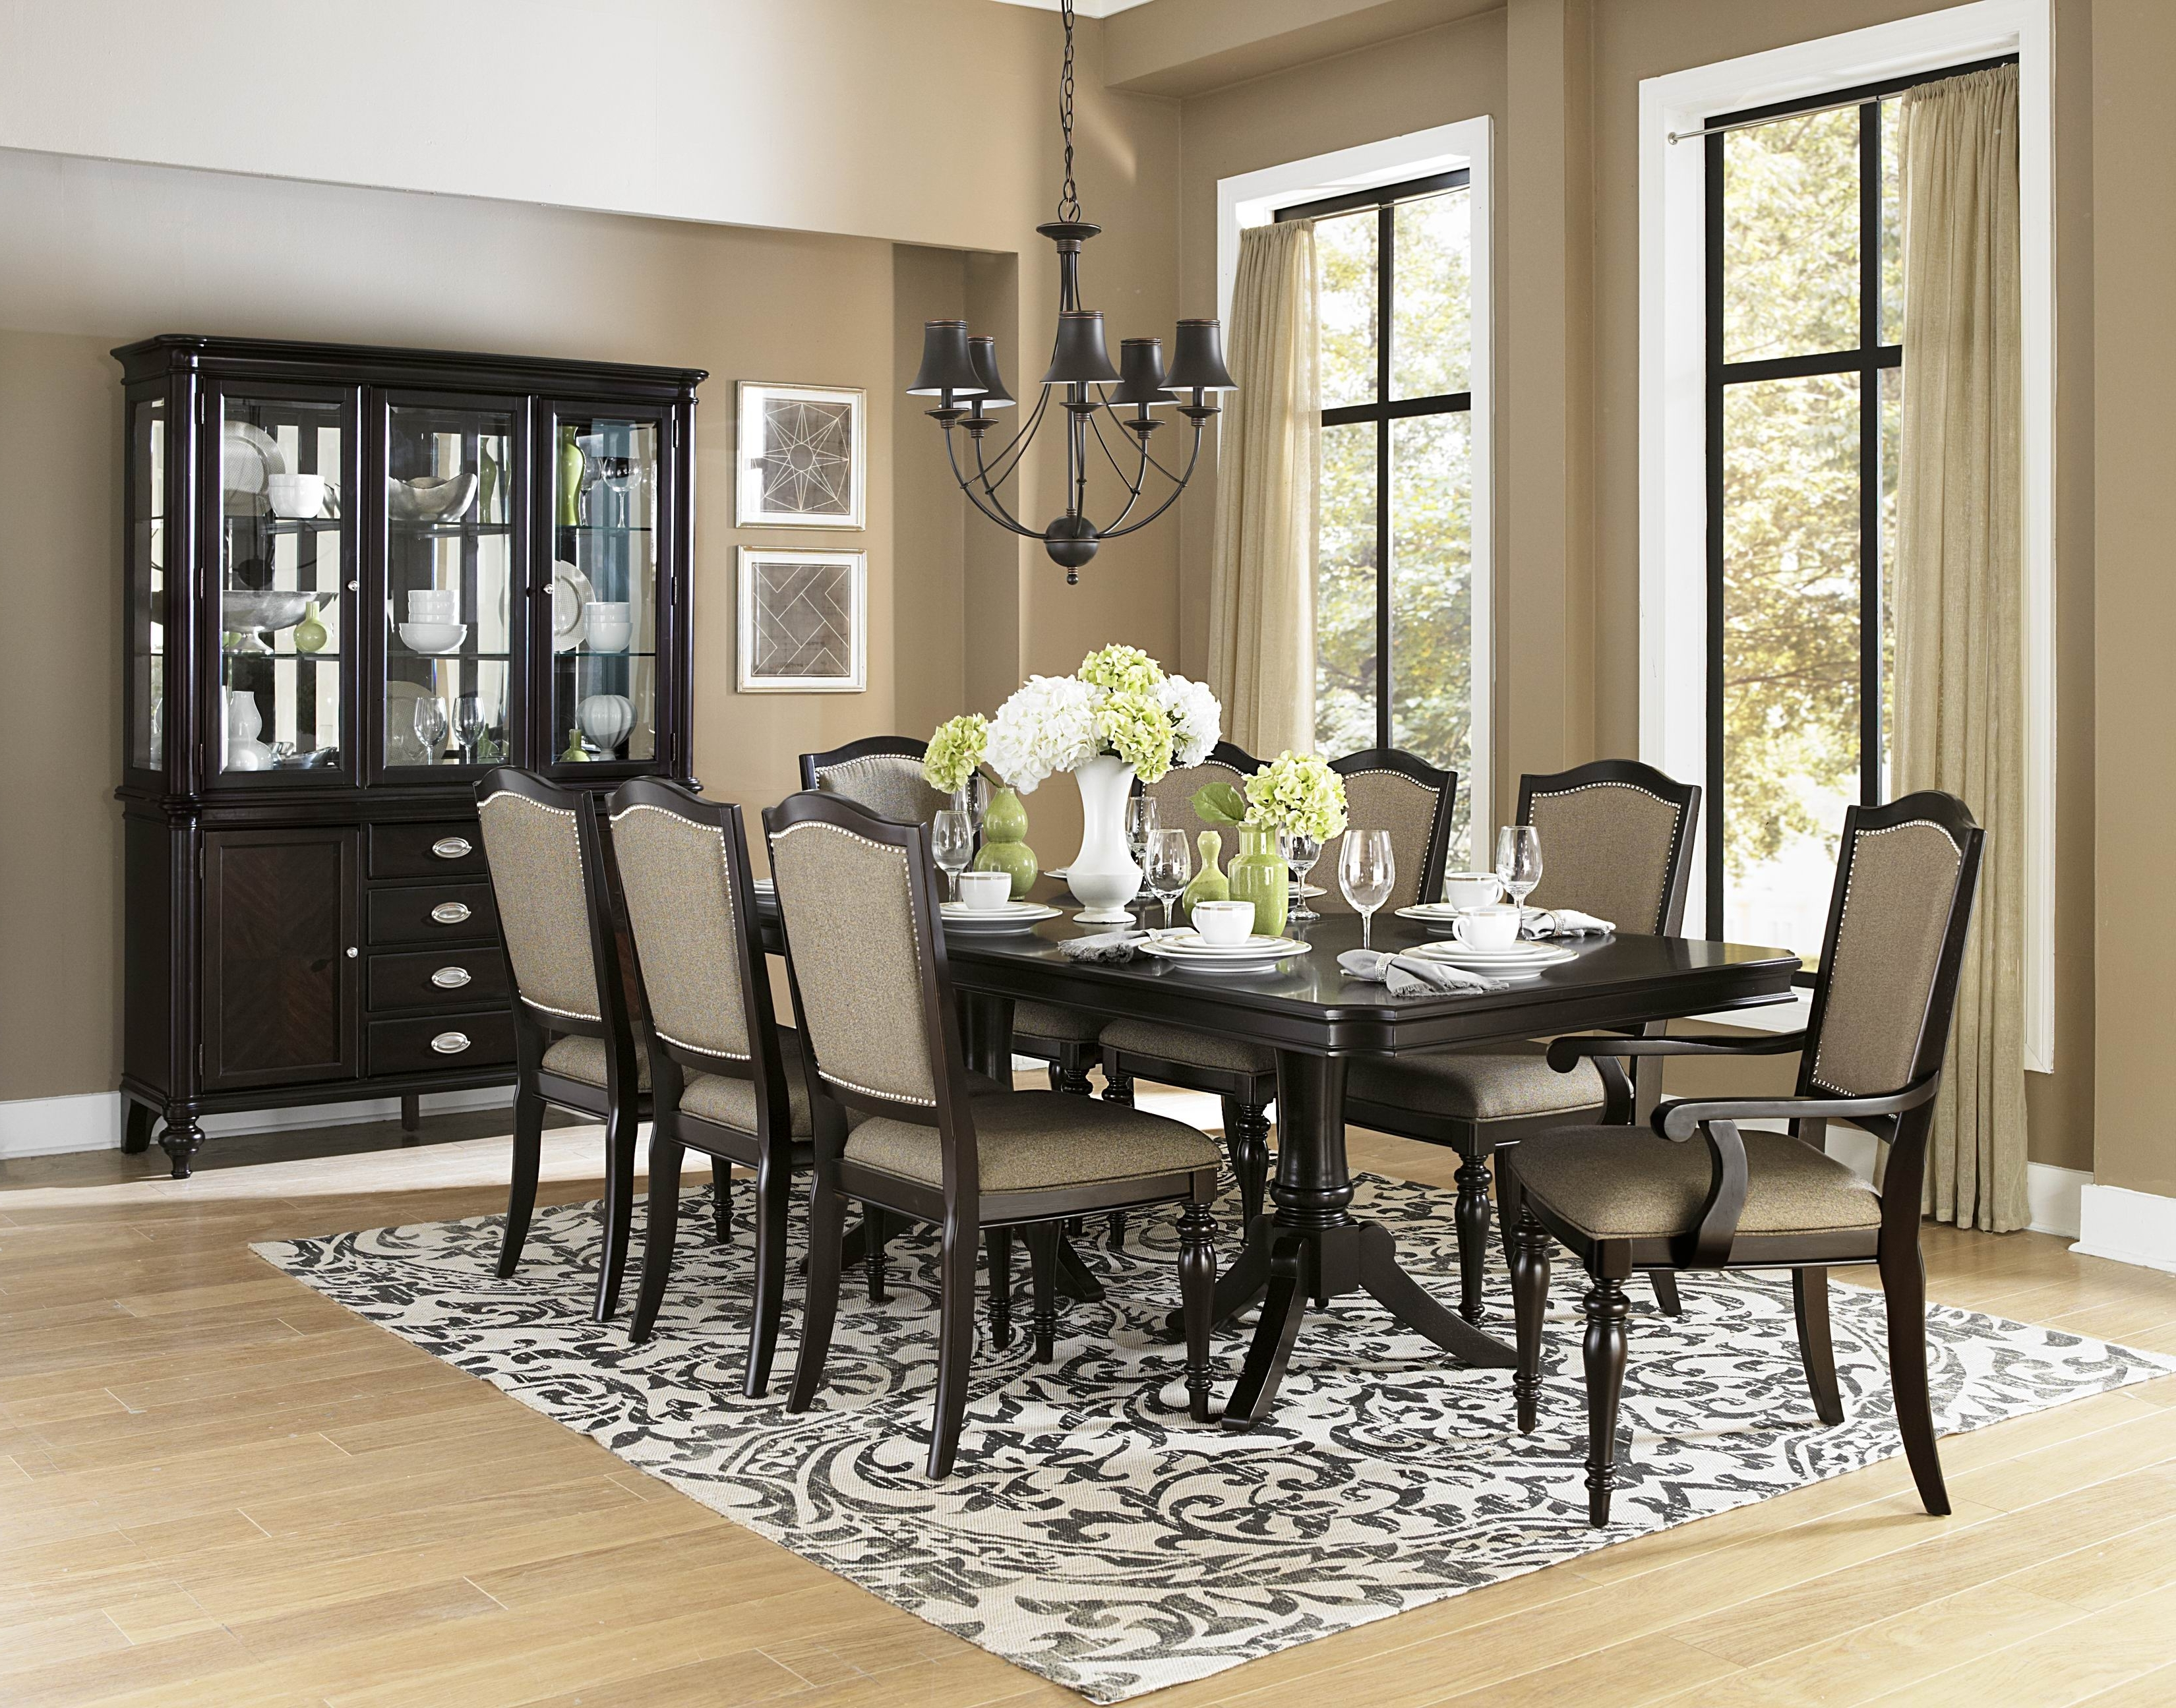 Dining Room Dark Wood Table Big Dining Room Table Black Dining Table Within Widely Used Dark Wood Dining Tables And Chairs (View 19 of 25)